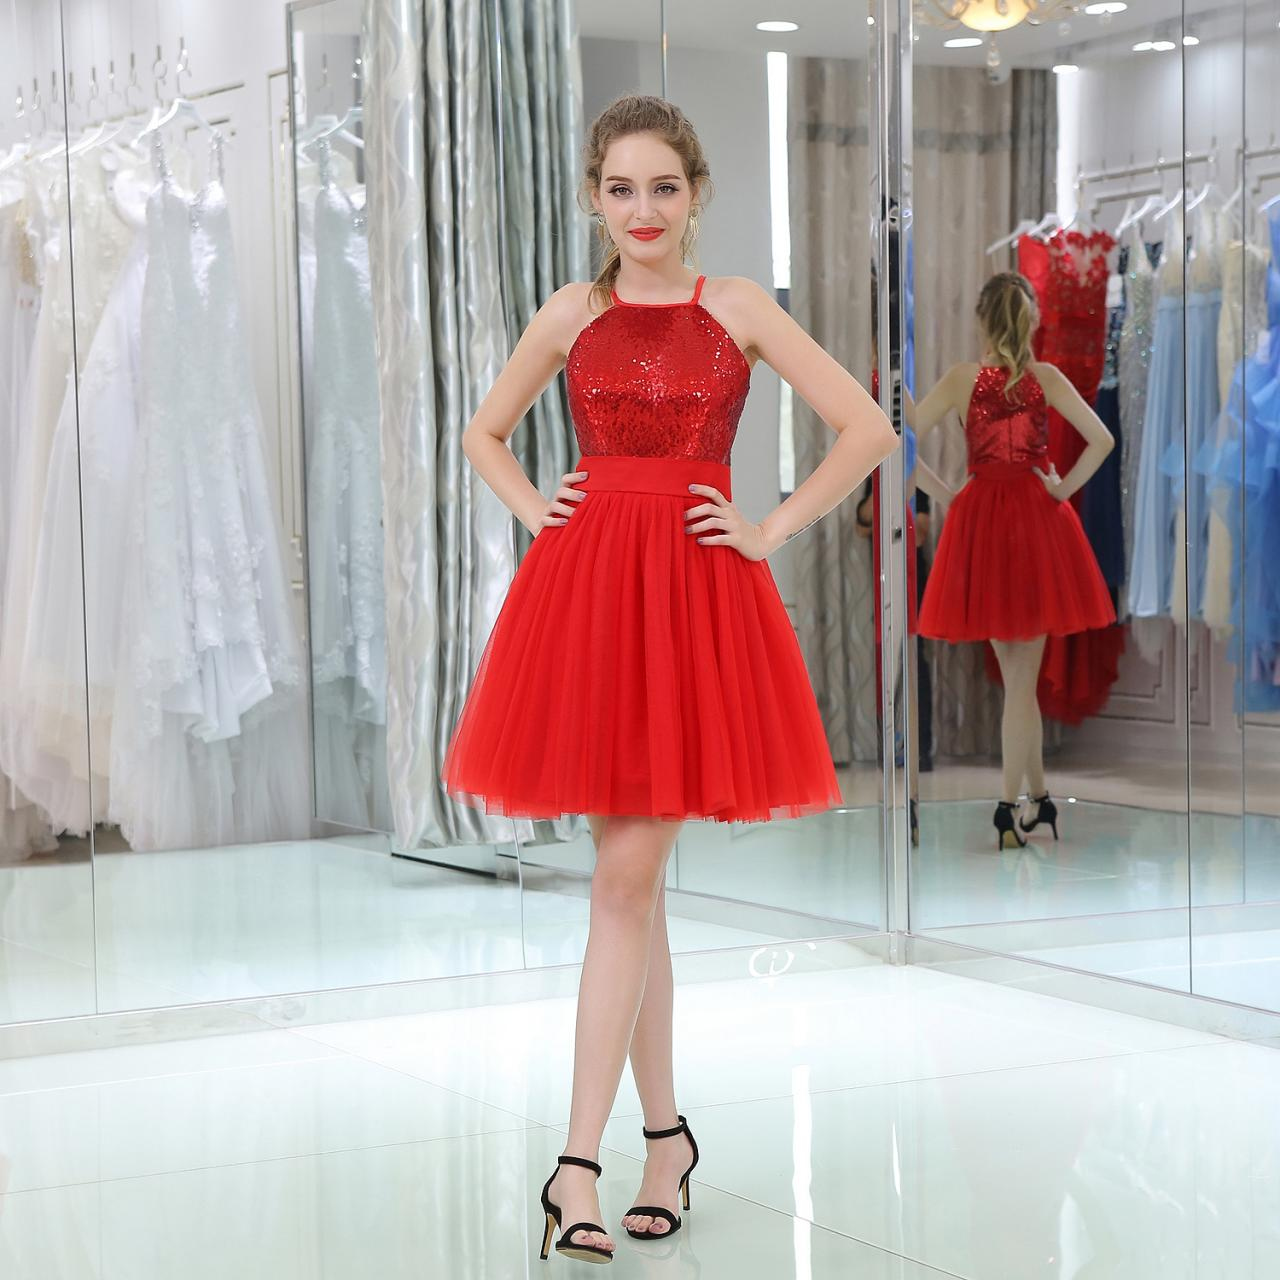 Homecoming Dress,Red Short Homecoming Dresses With Halter Neckline, Short Party Dresses,Cocktail Dresses,Prom Gowns